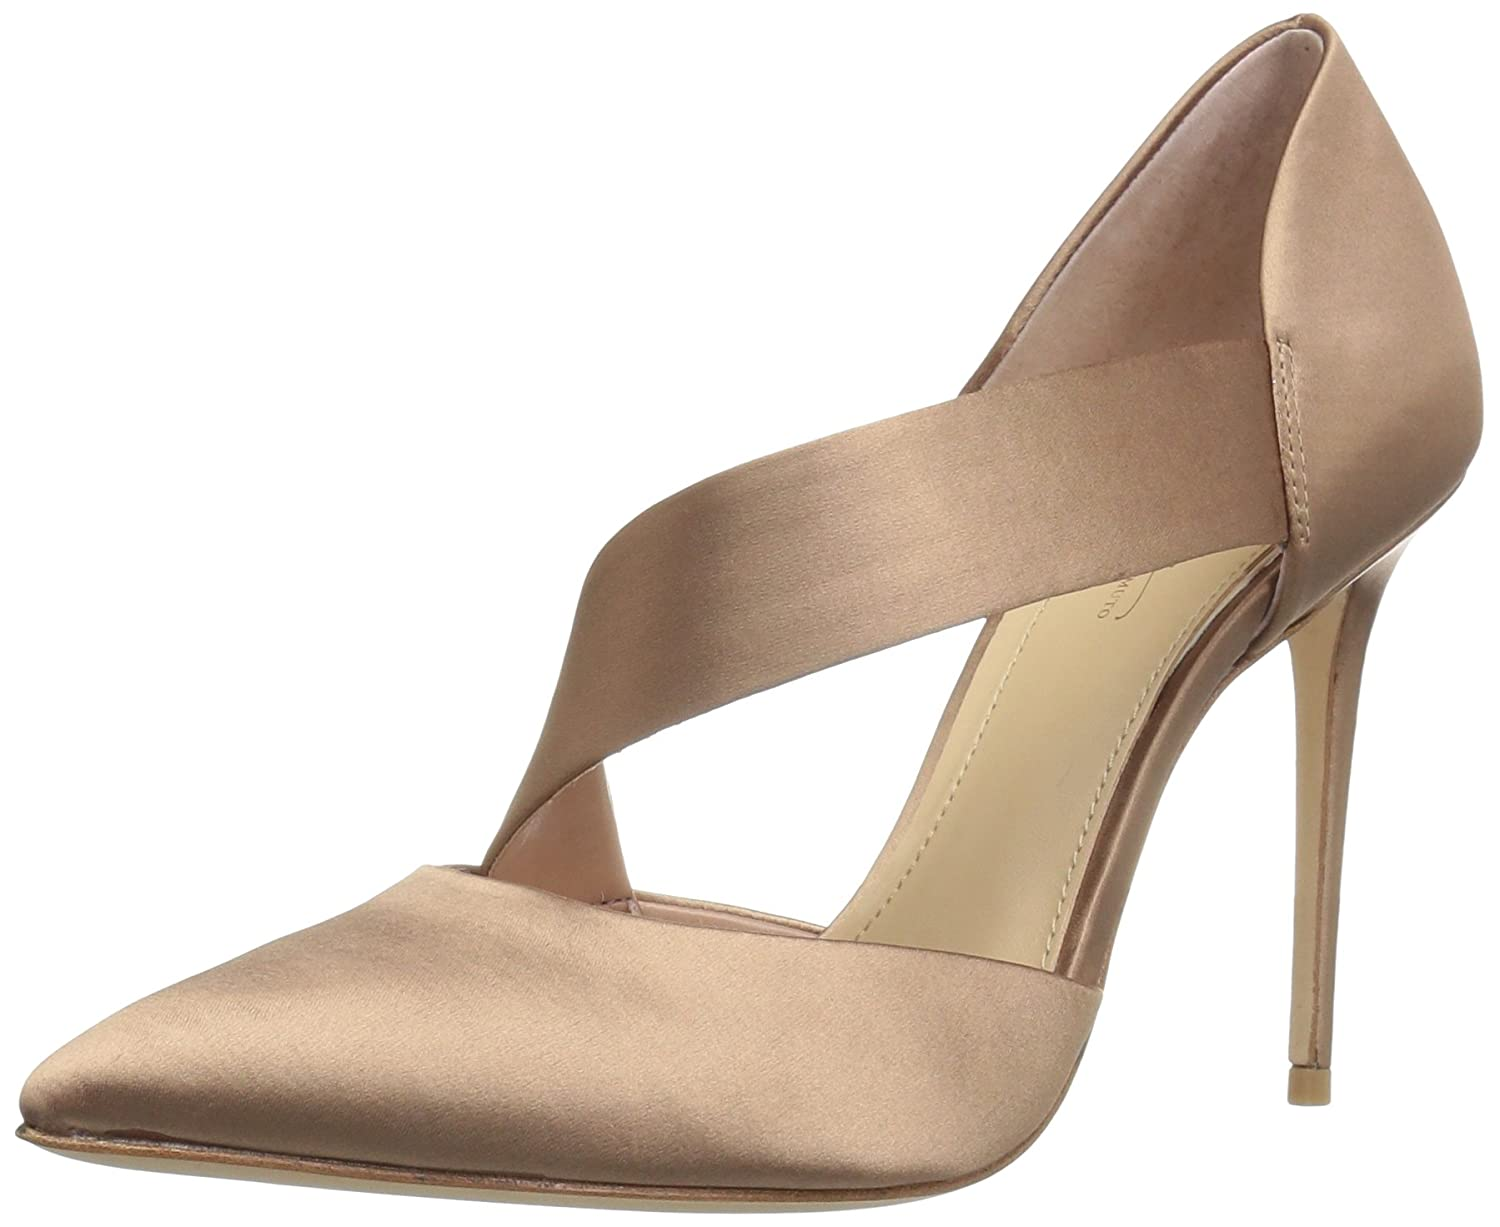 Warm Taupe Vince Camuto Imagine Women's OYA Pump